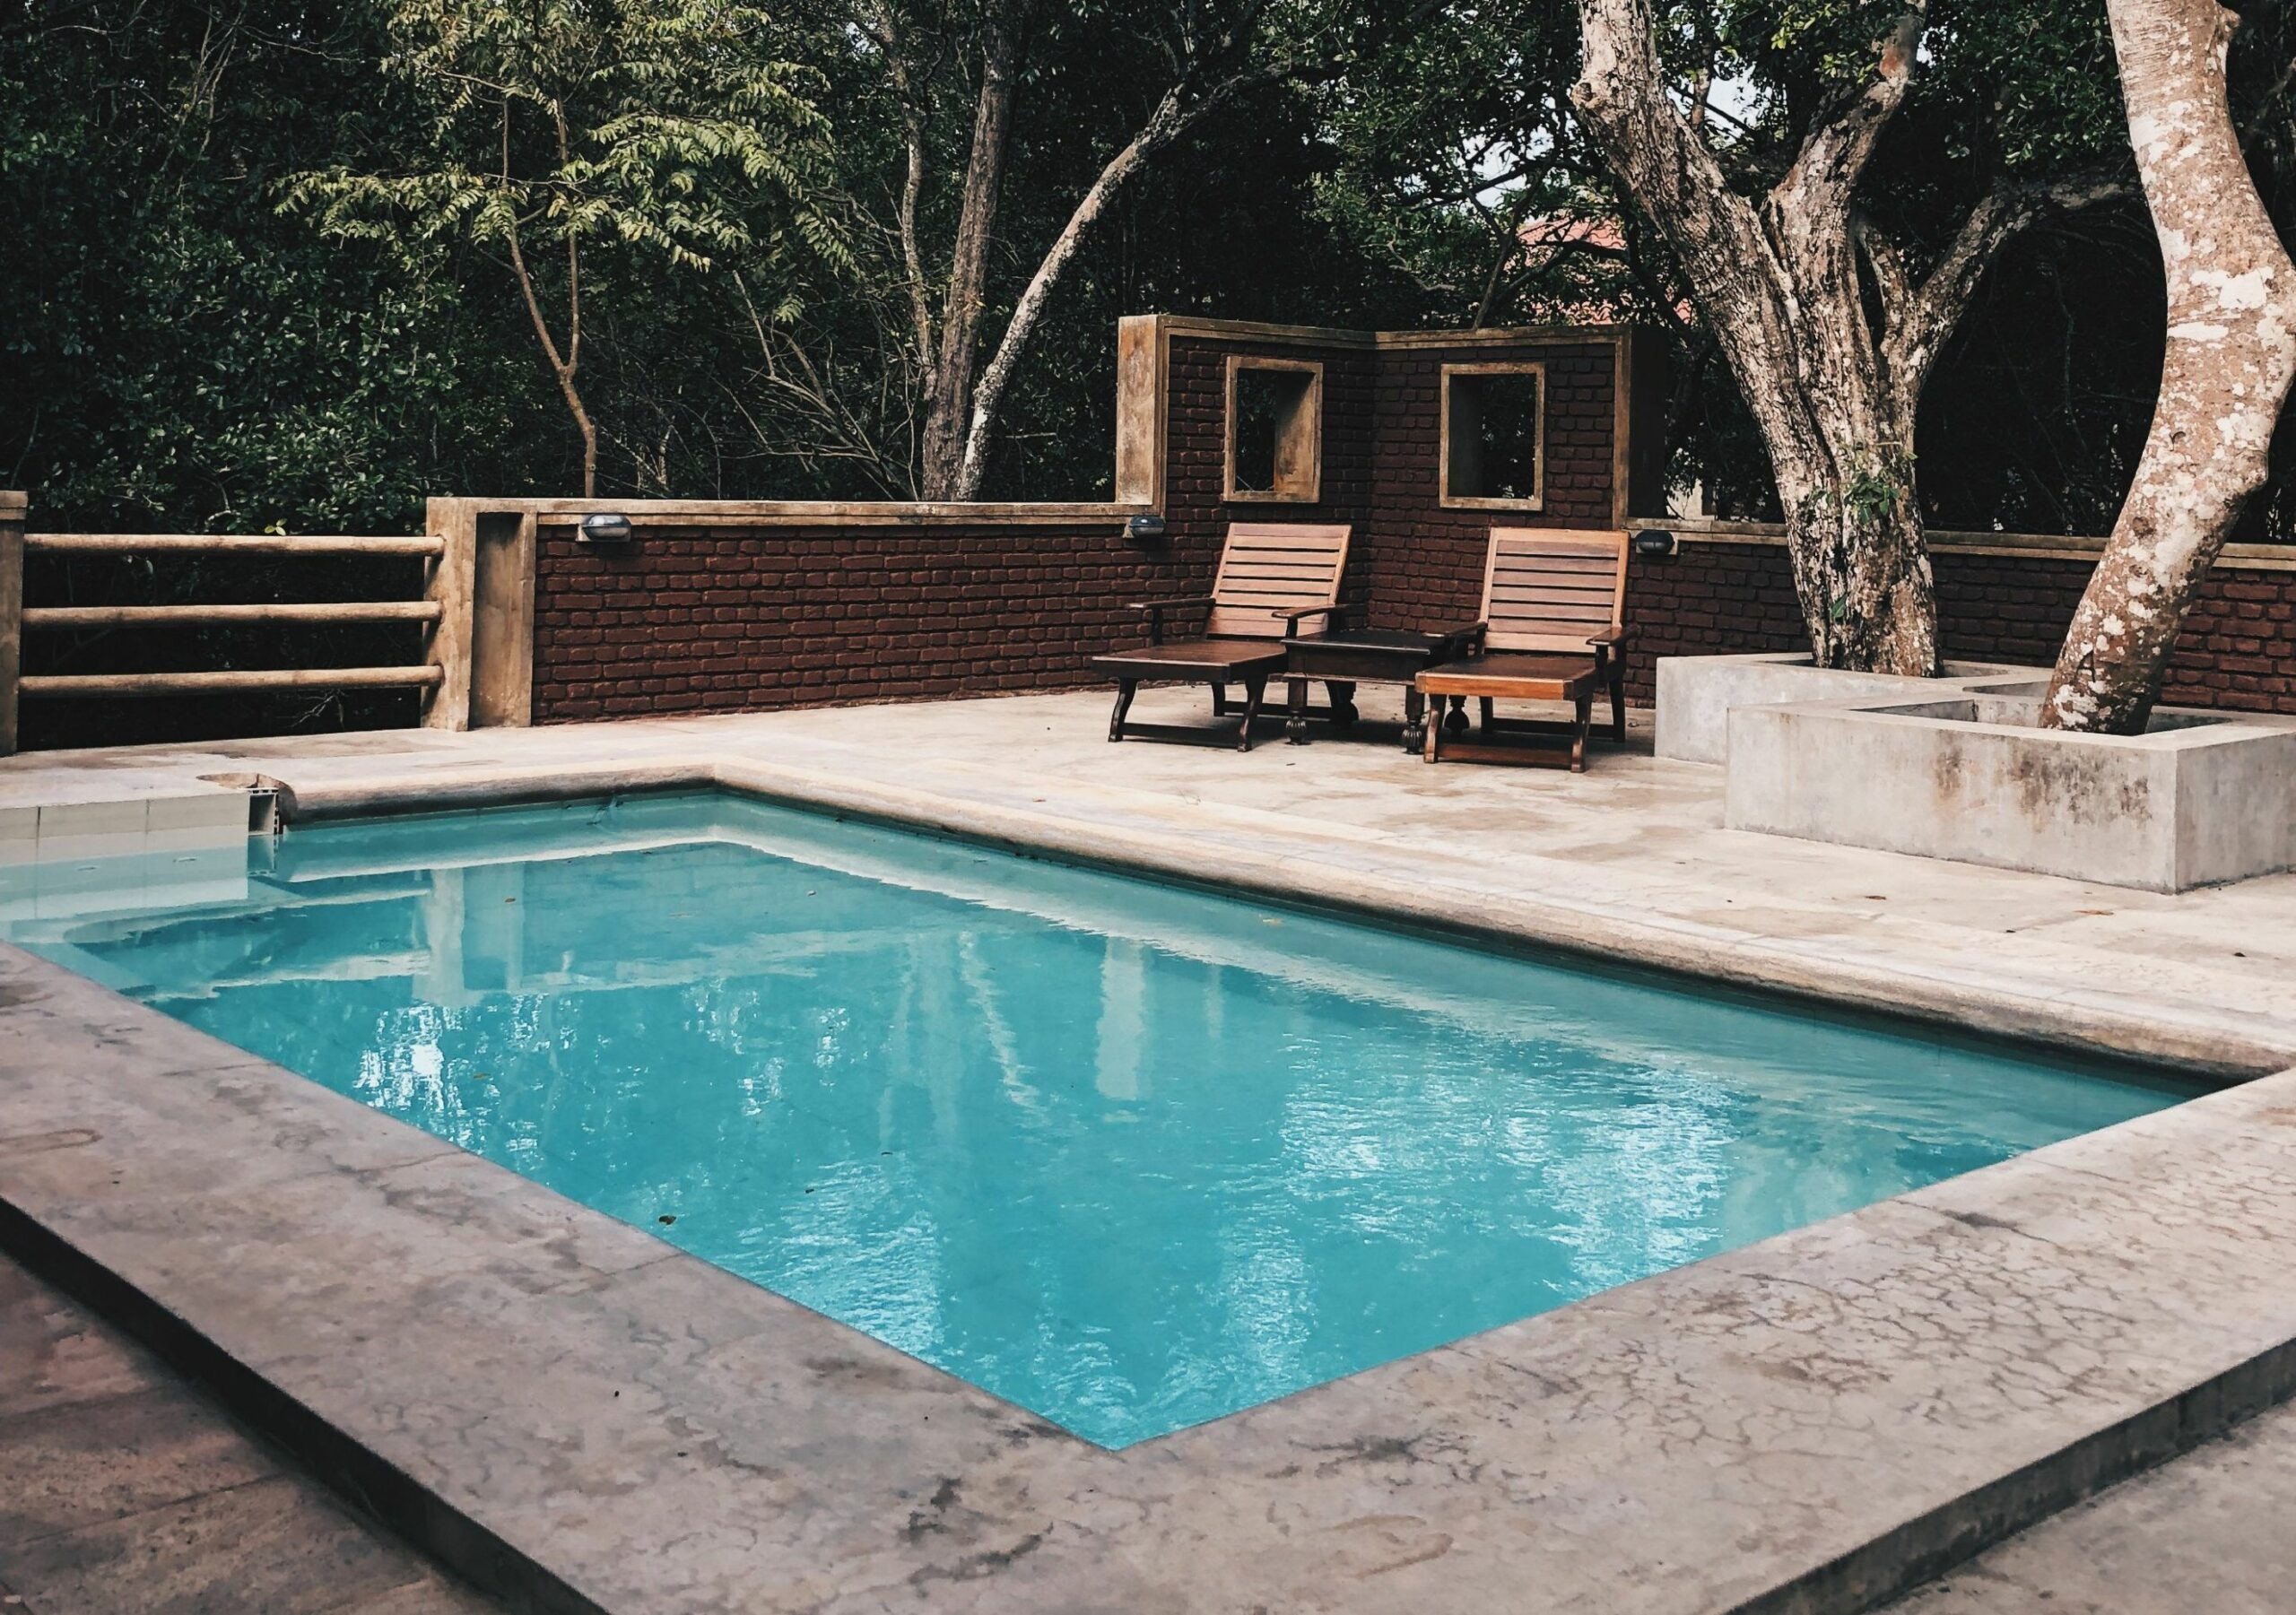 What Is a Cocktail Pool? Designs, Dimensions, Cost, and More - pool ideas rectangle